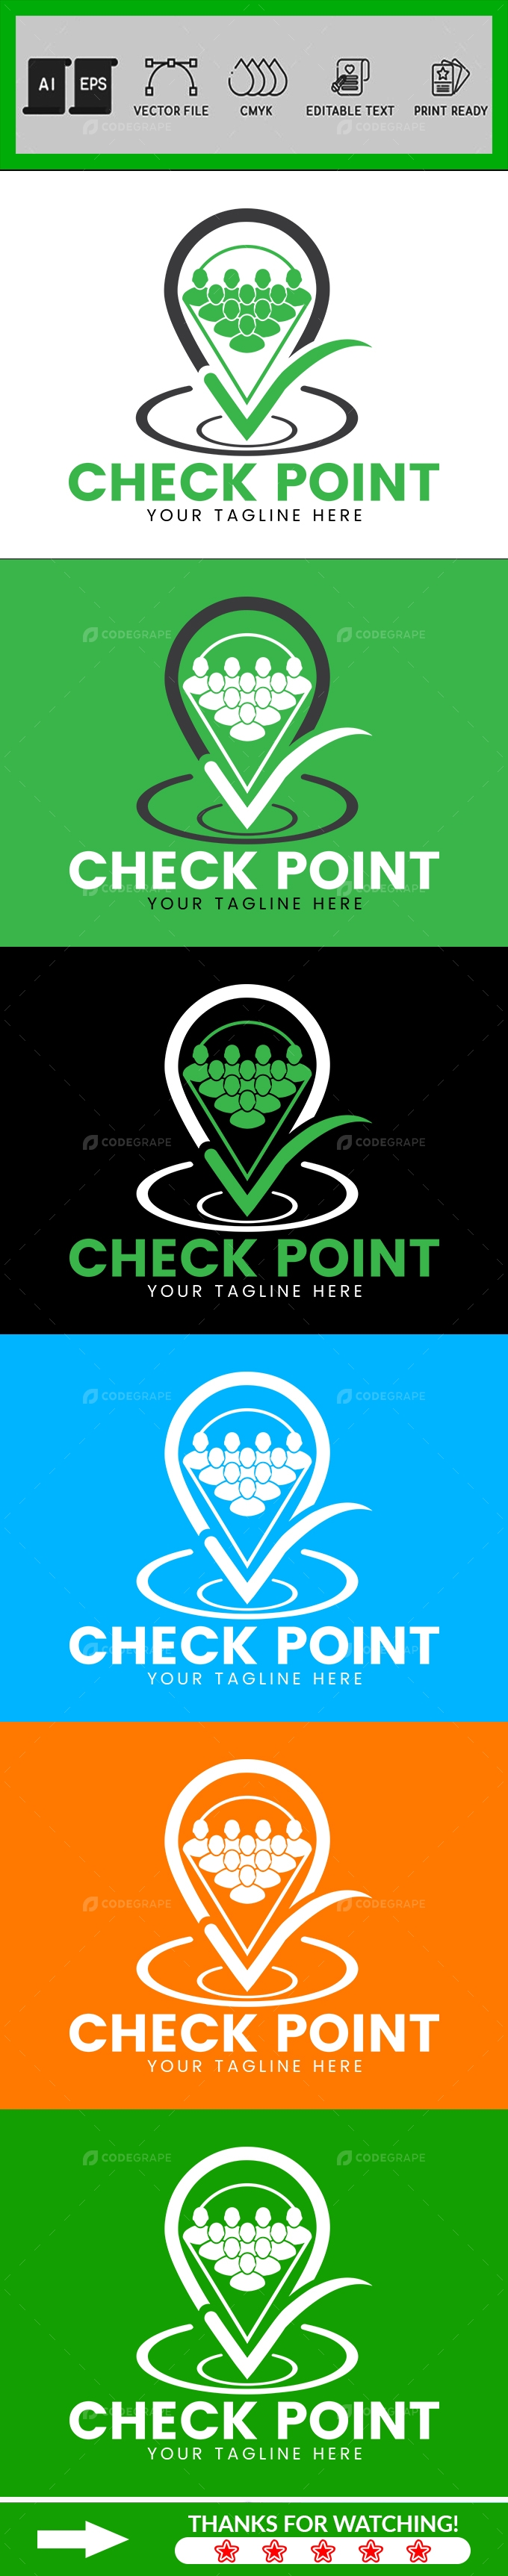 Human Check Logo Design Template